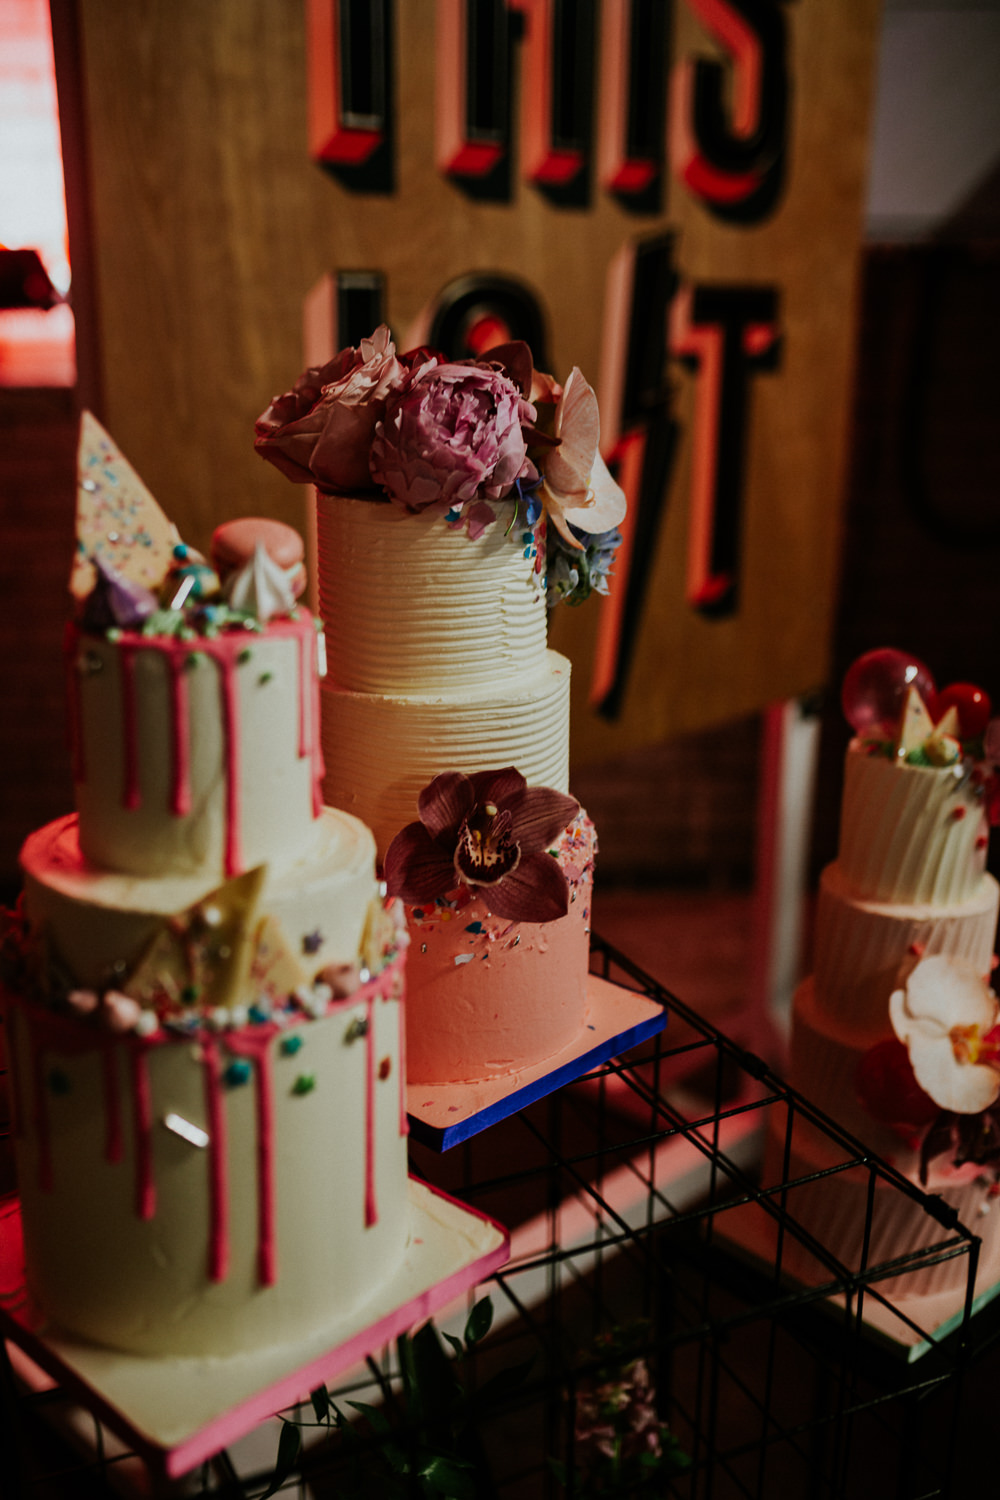 Cake Table Cakes Drip Ombre Floral Flowers Alternative Glitter Neon Sign Wedding Ideas State Of Love and Trust Photography